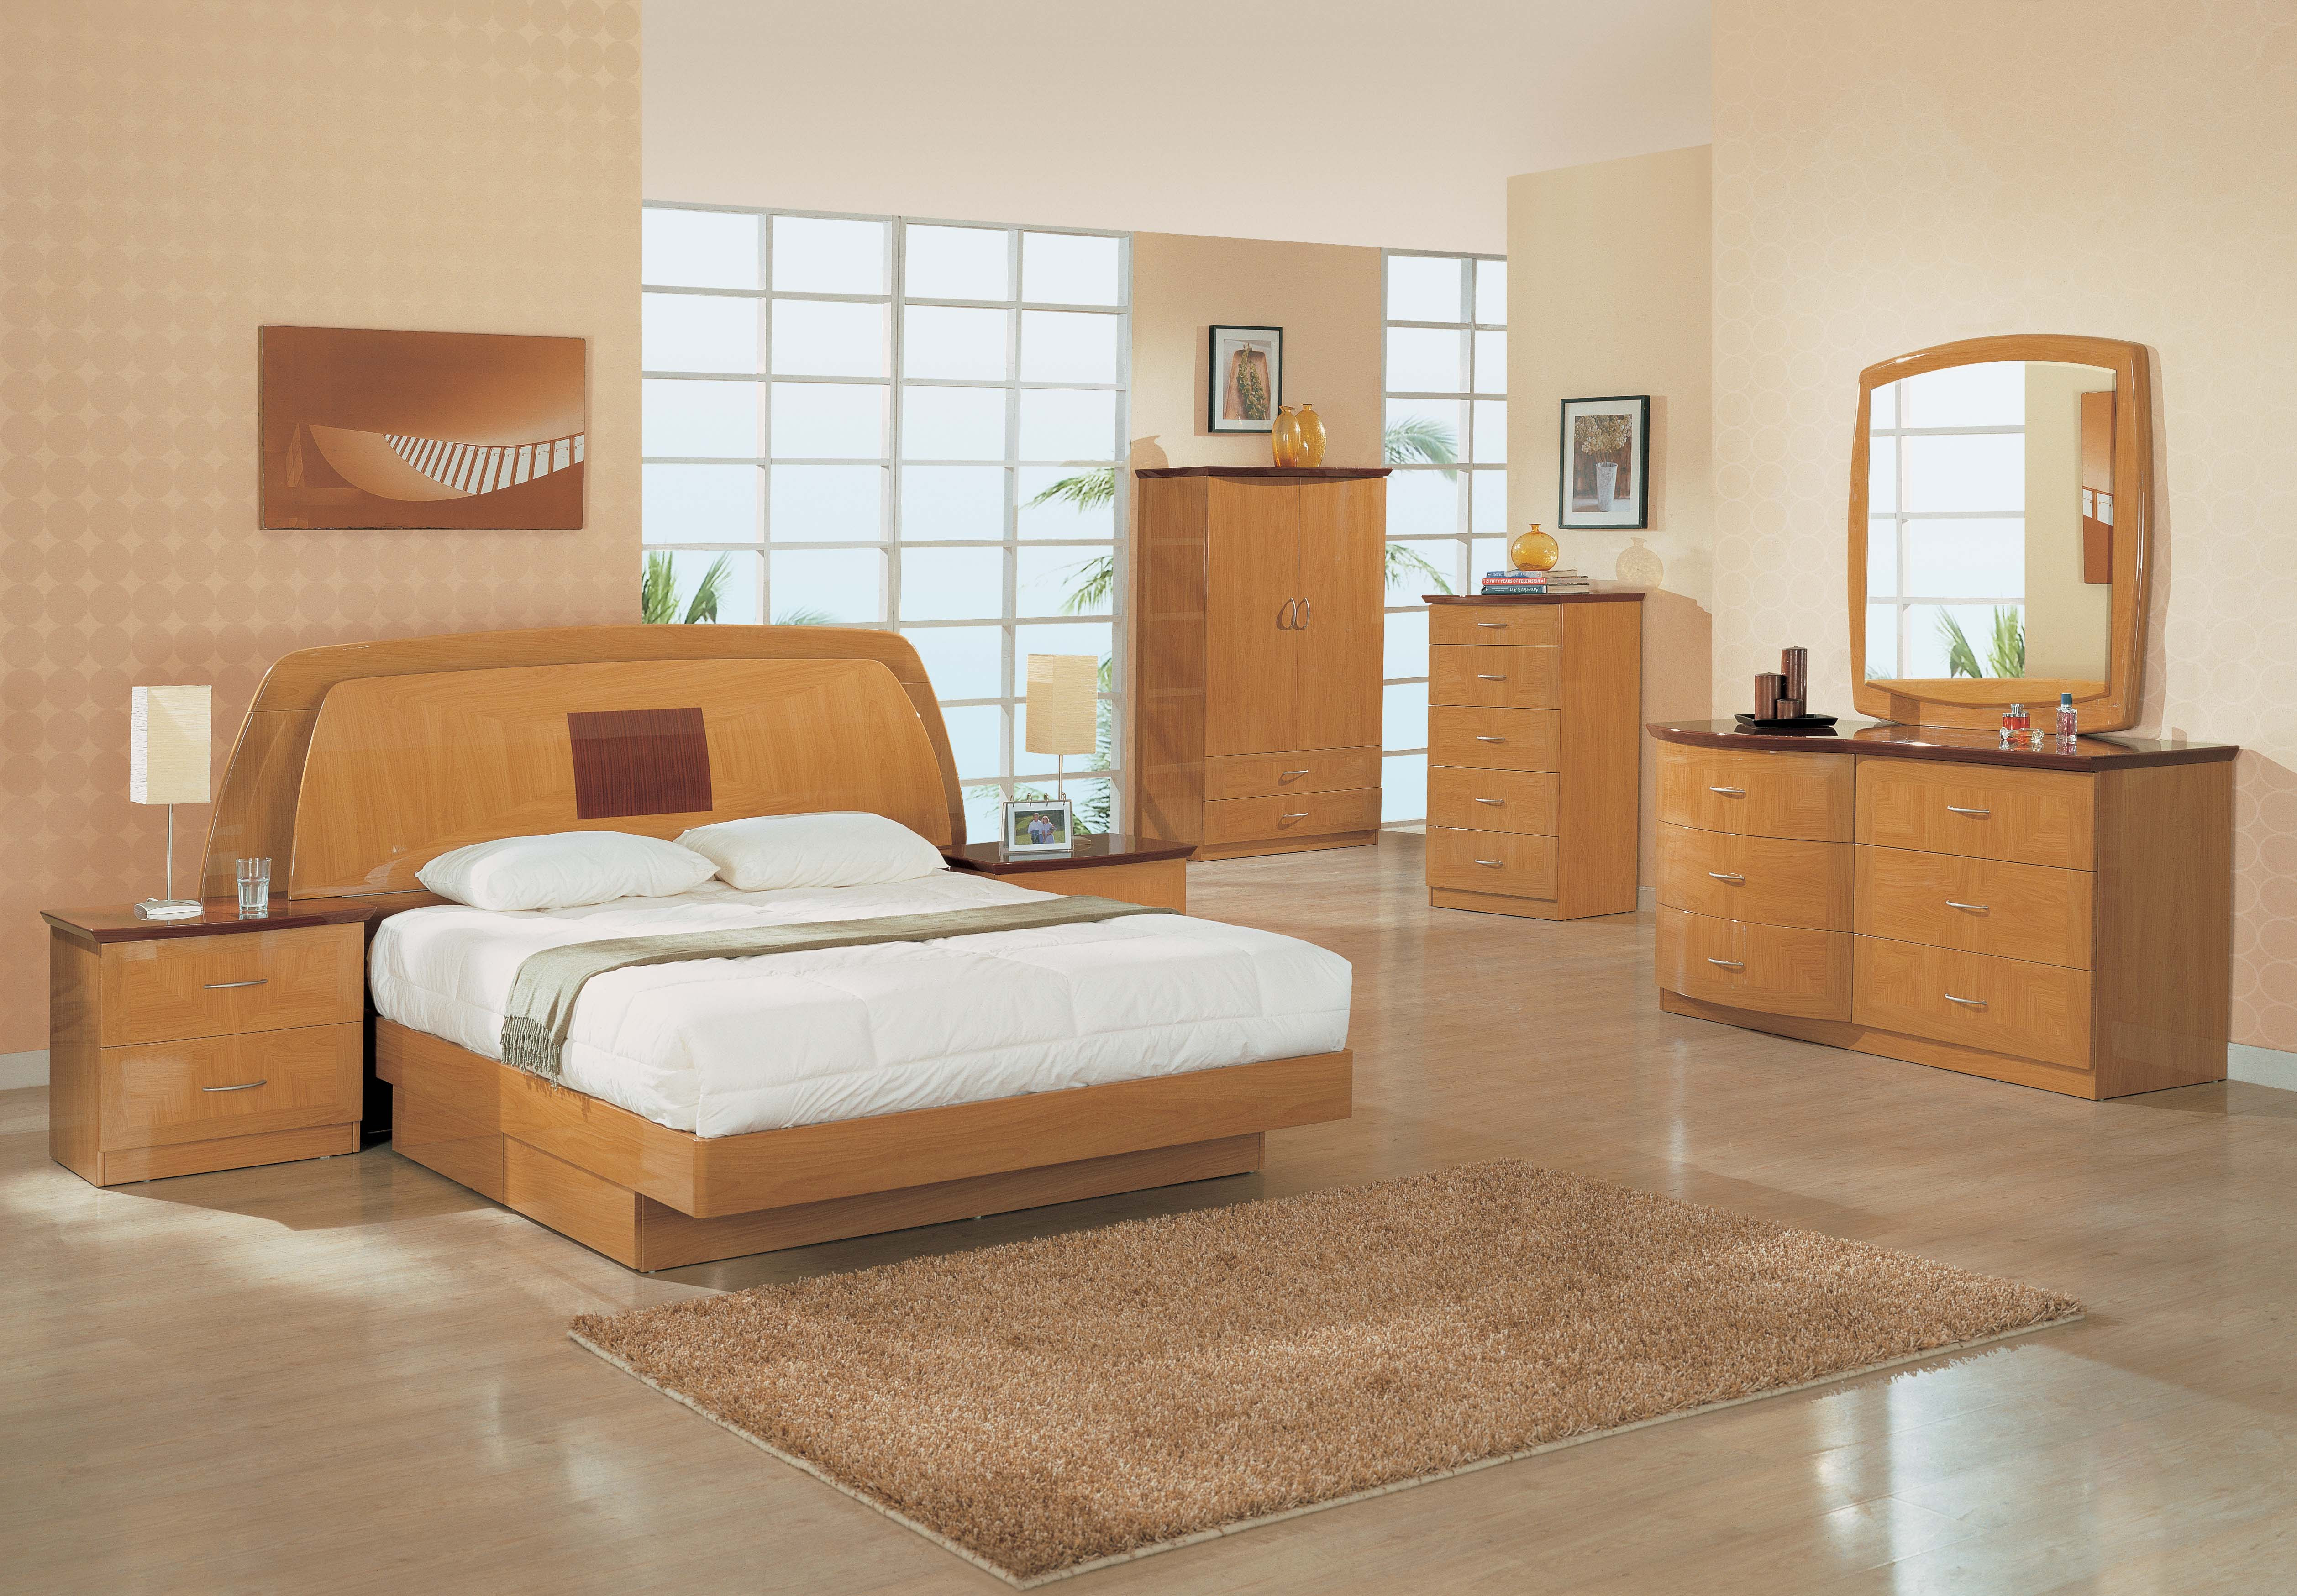 Decorate Your Bedroom With Elegant Concepts - Home Designer